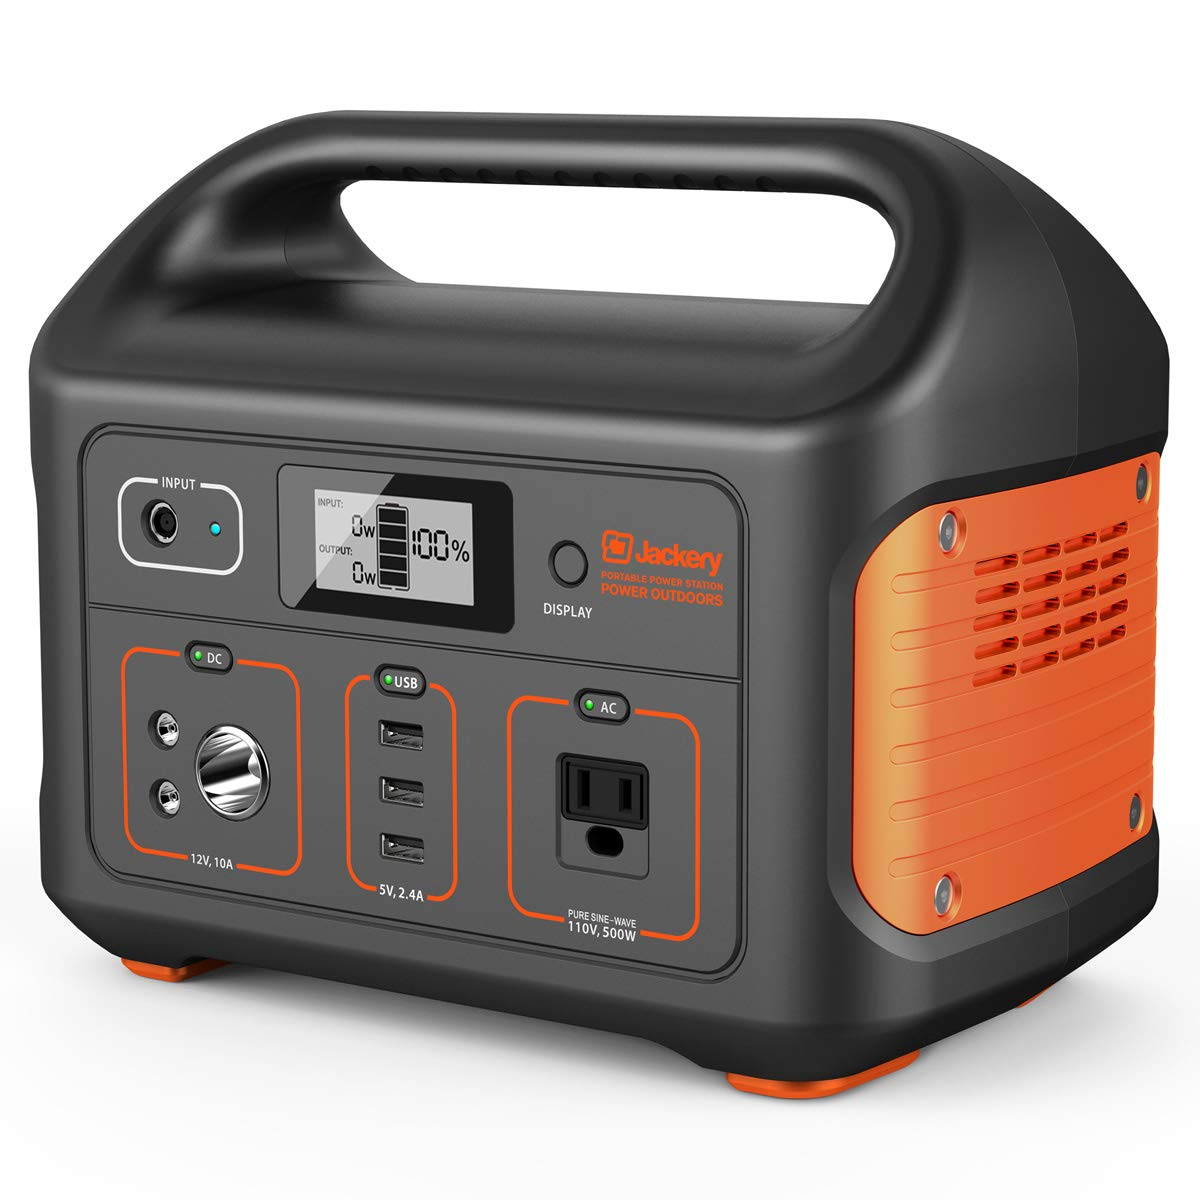 Jackery Portable Power Station Explorer 500, 518Wh Outdoor Mobile Lithium Battery Pack with 110V/500W AC Outlet, Solar-Ready Generator RV Battery CPAP Power Outage Emergency Kit (Solar Panel Optional)